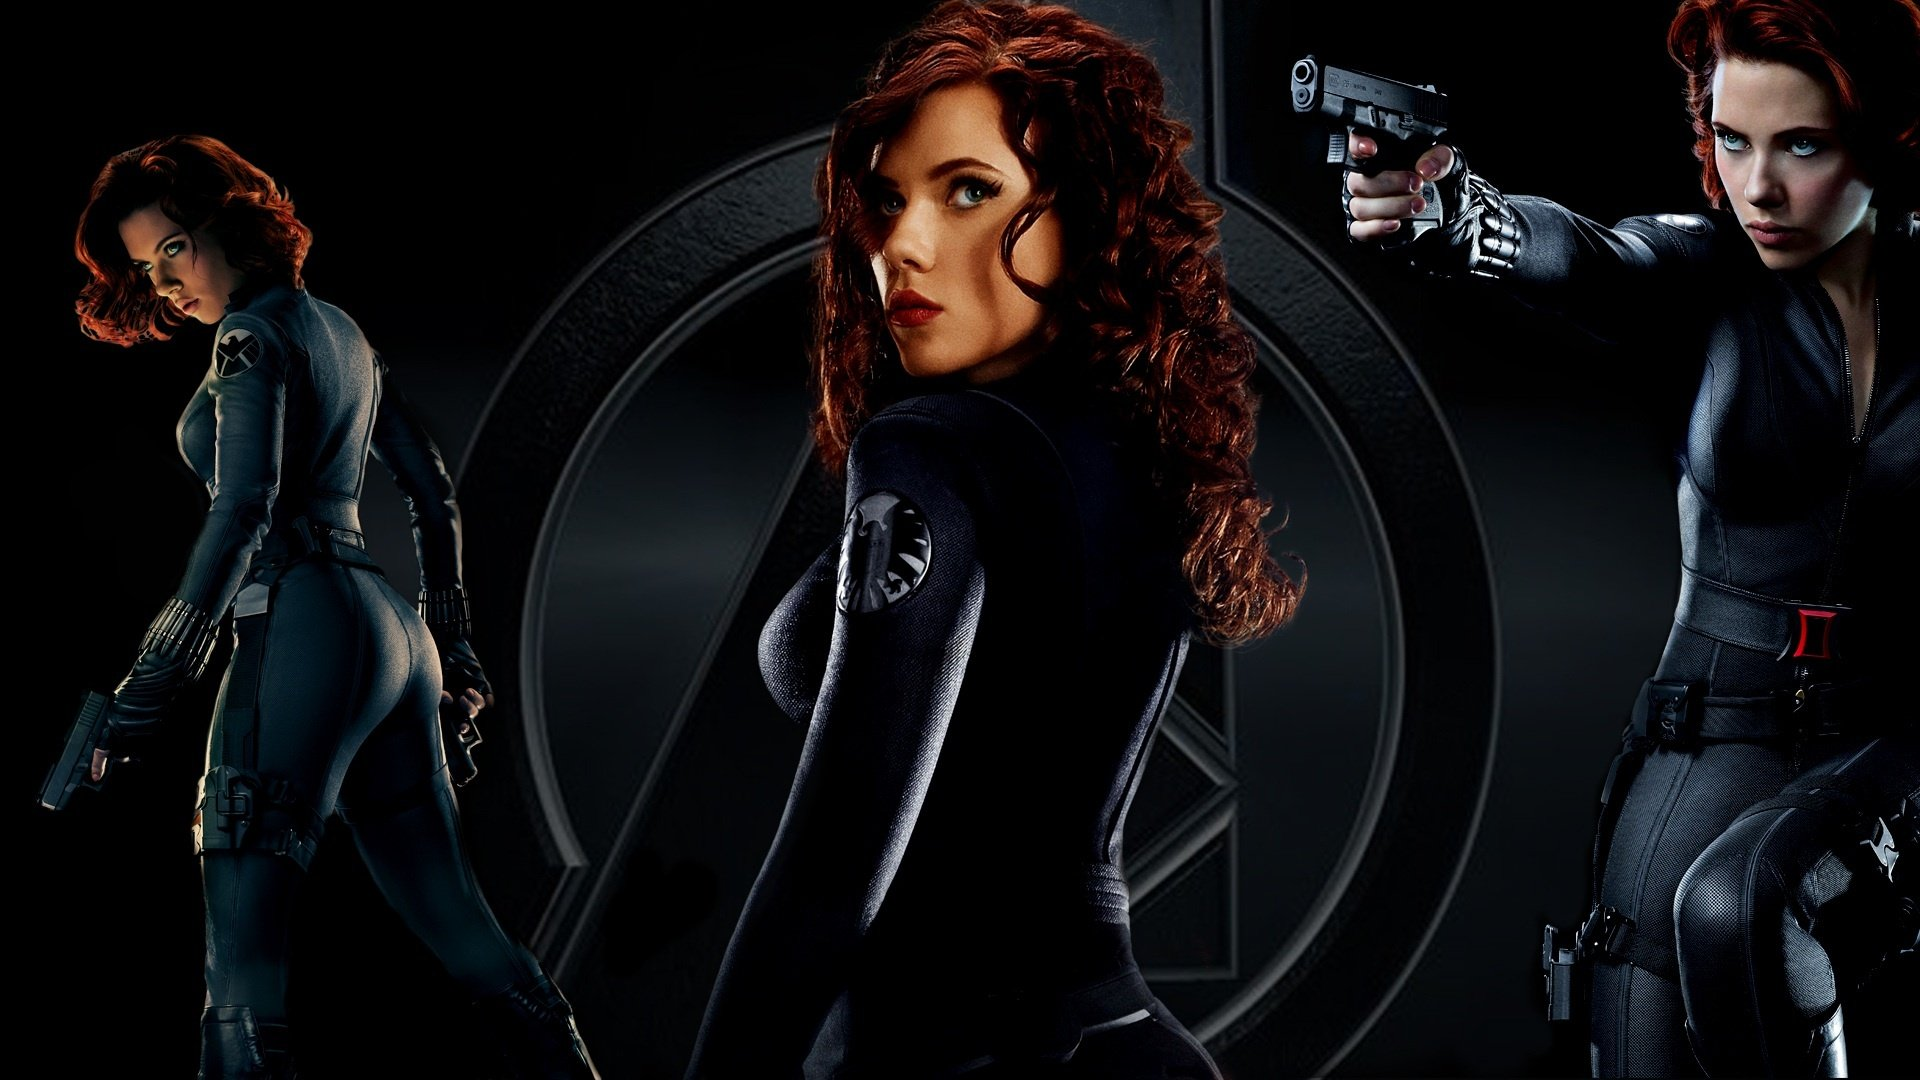 Avengers Age Of Ultron Joss Whedon confirme Black Widow 1920x1080